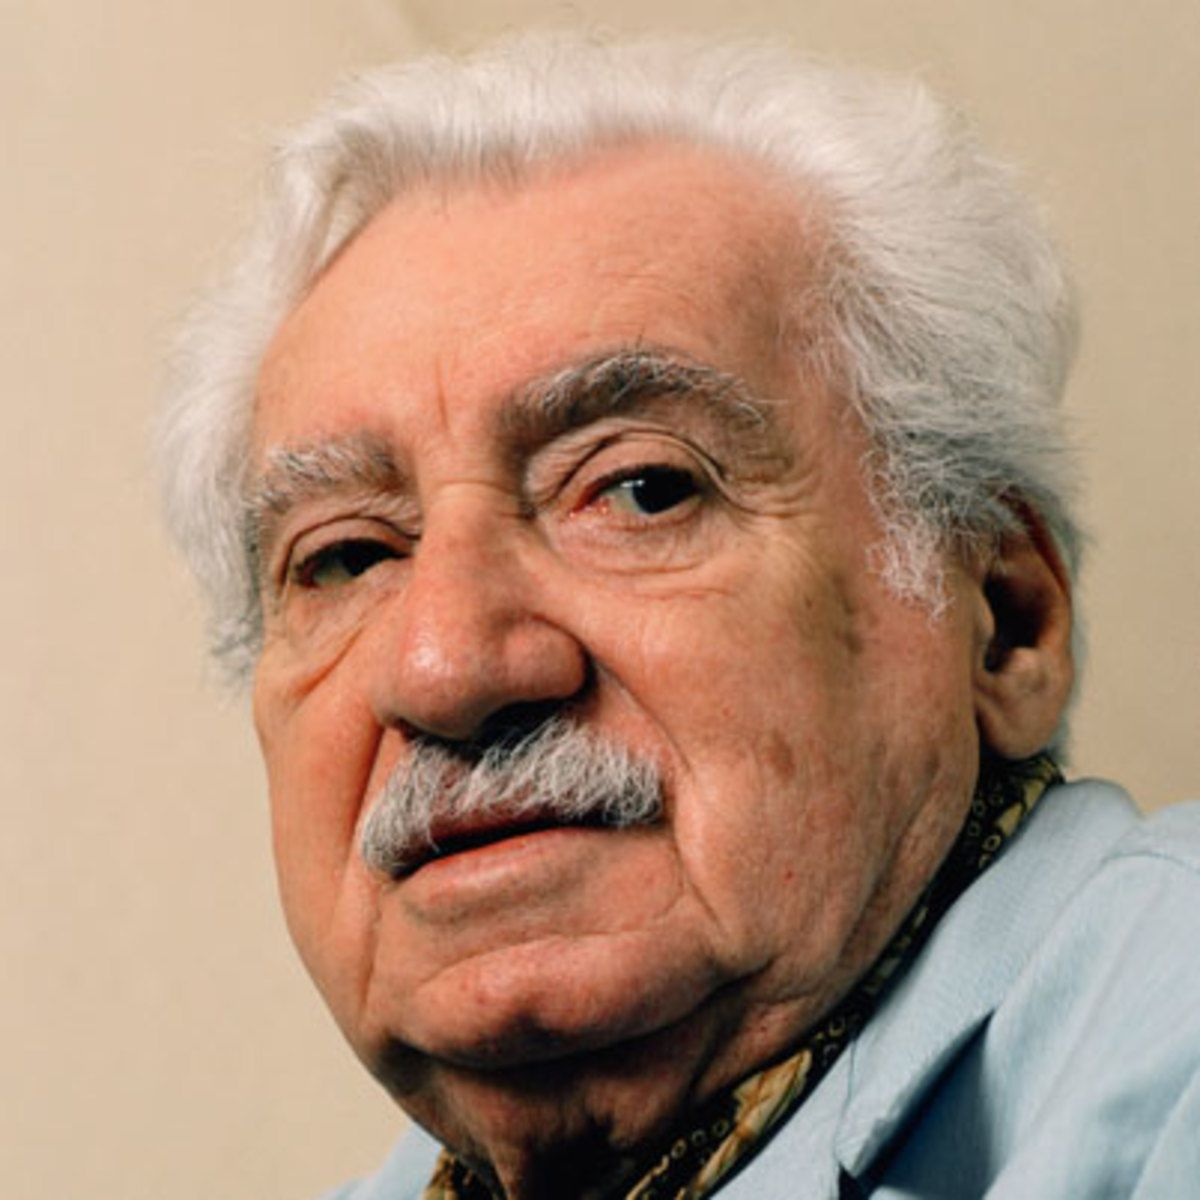 Jorge Amado - Brazilian writer of the modernist school. He remains the best known of modern Brazilian writers, with his work having been translated into some 49 languages.